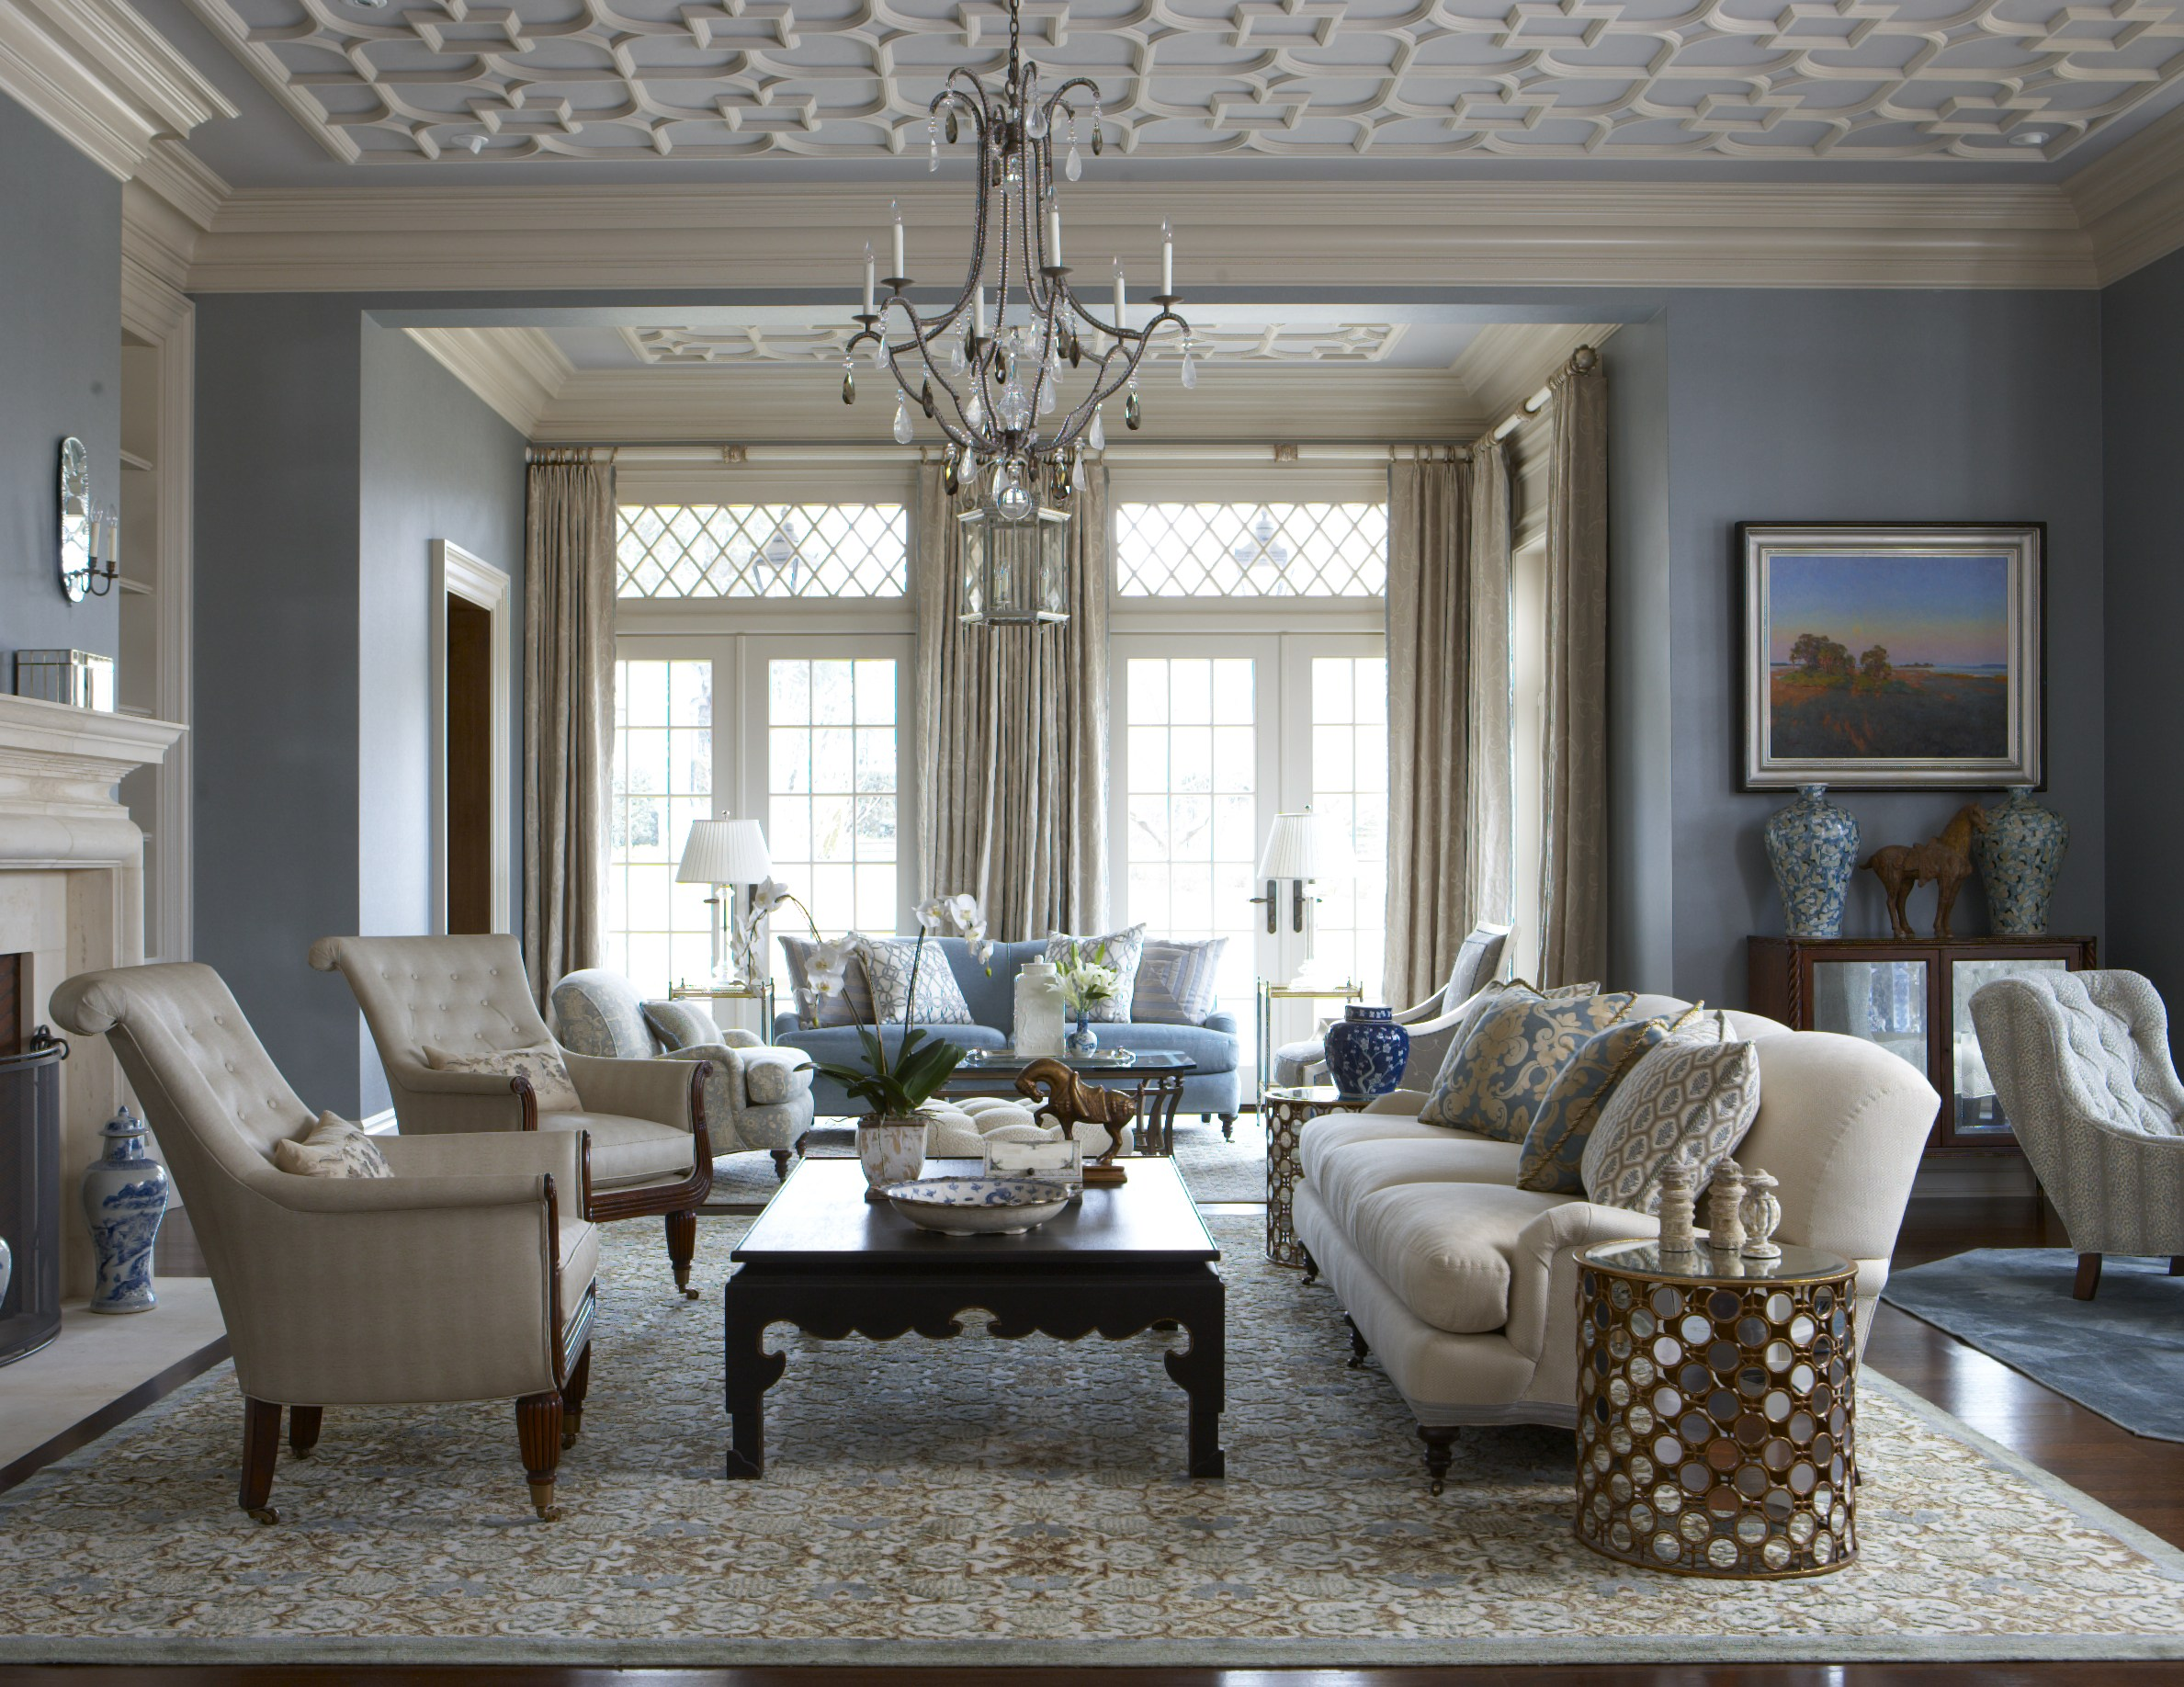 Cindy Rinfret lets the architecture shine in the living room by keeping the furniture understated and by highlighting the beautifully detailed plaster ceiling by painting it cream and blue, with those colors reflected in the luxurious rugs that ground the room. Photo by Michael Partenio.